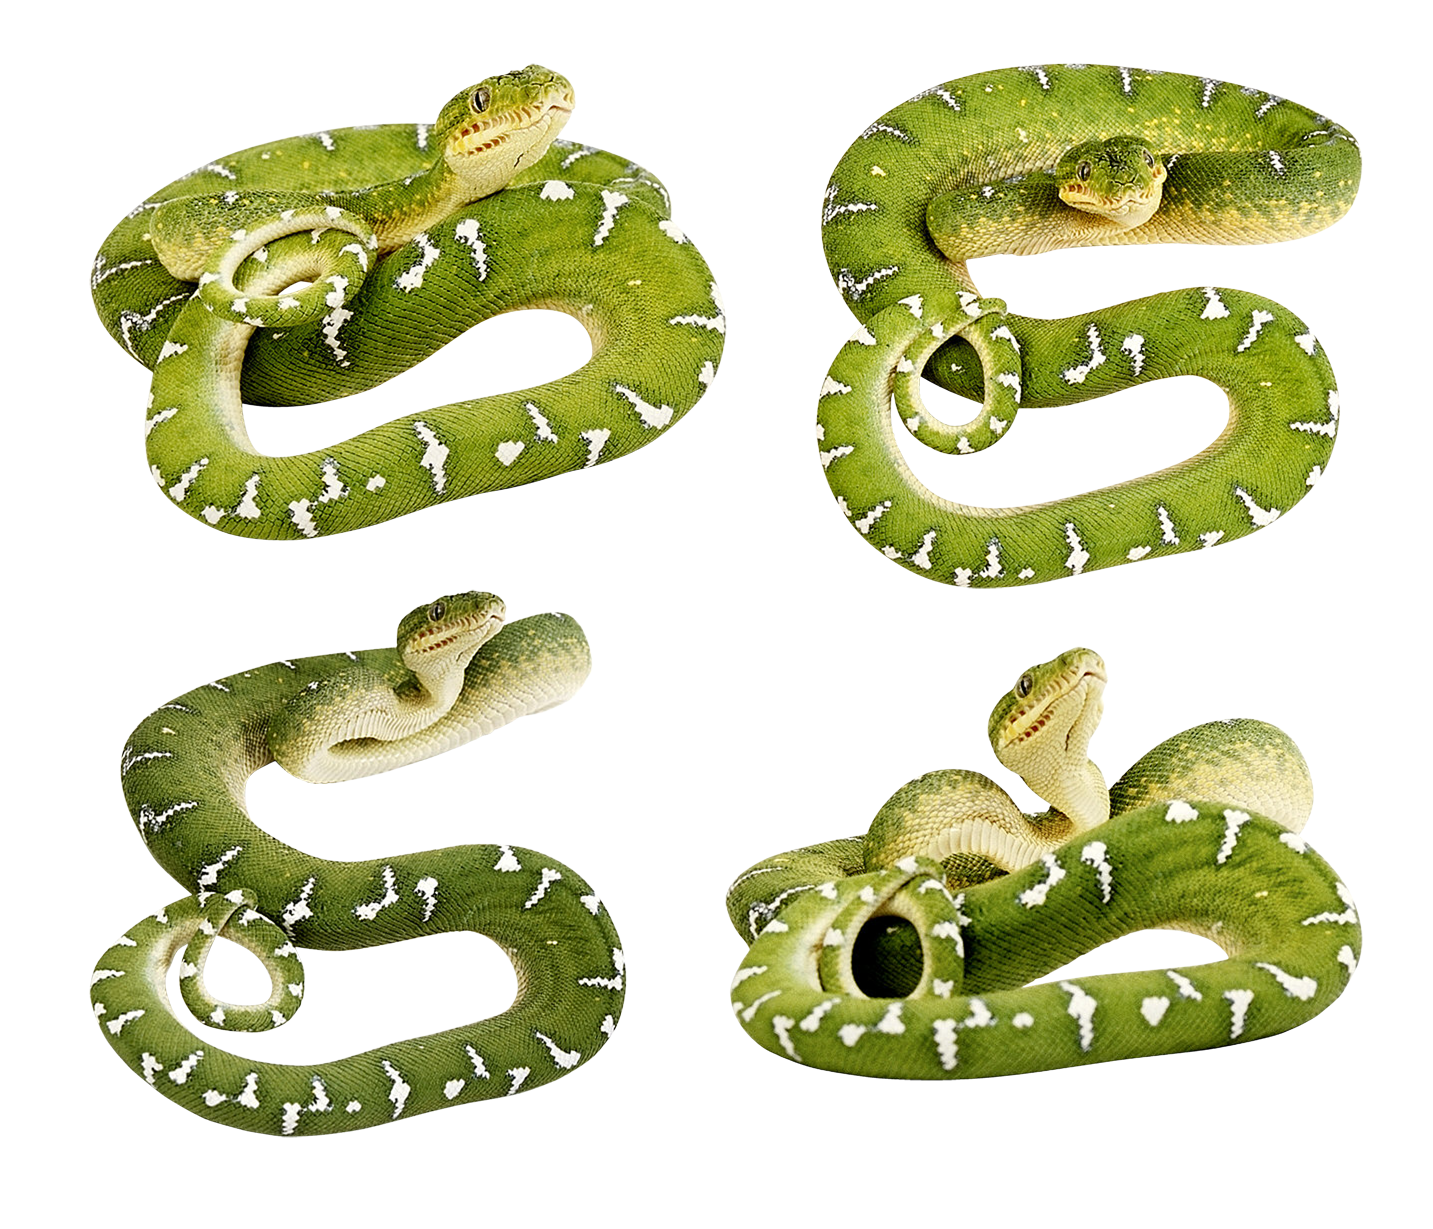 Green snakes PNG image